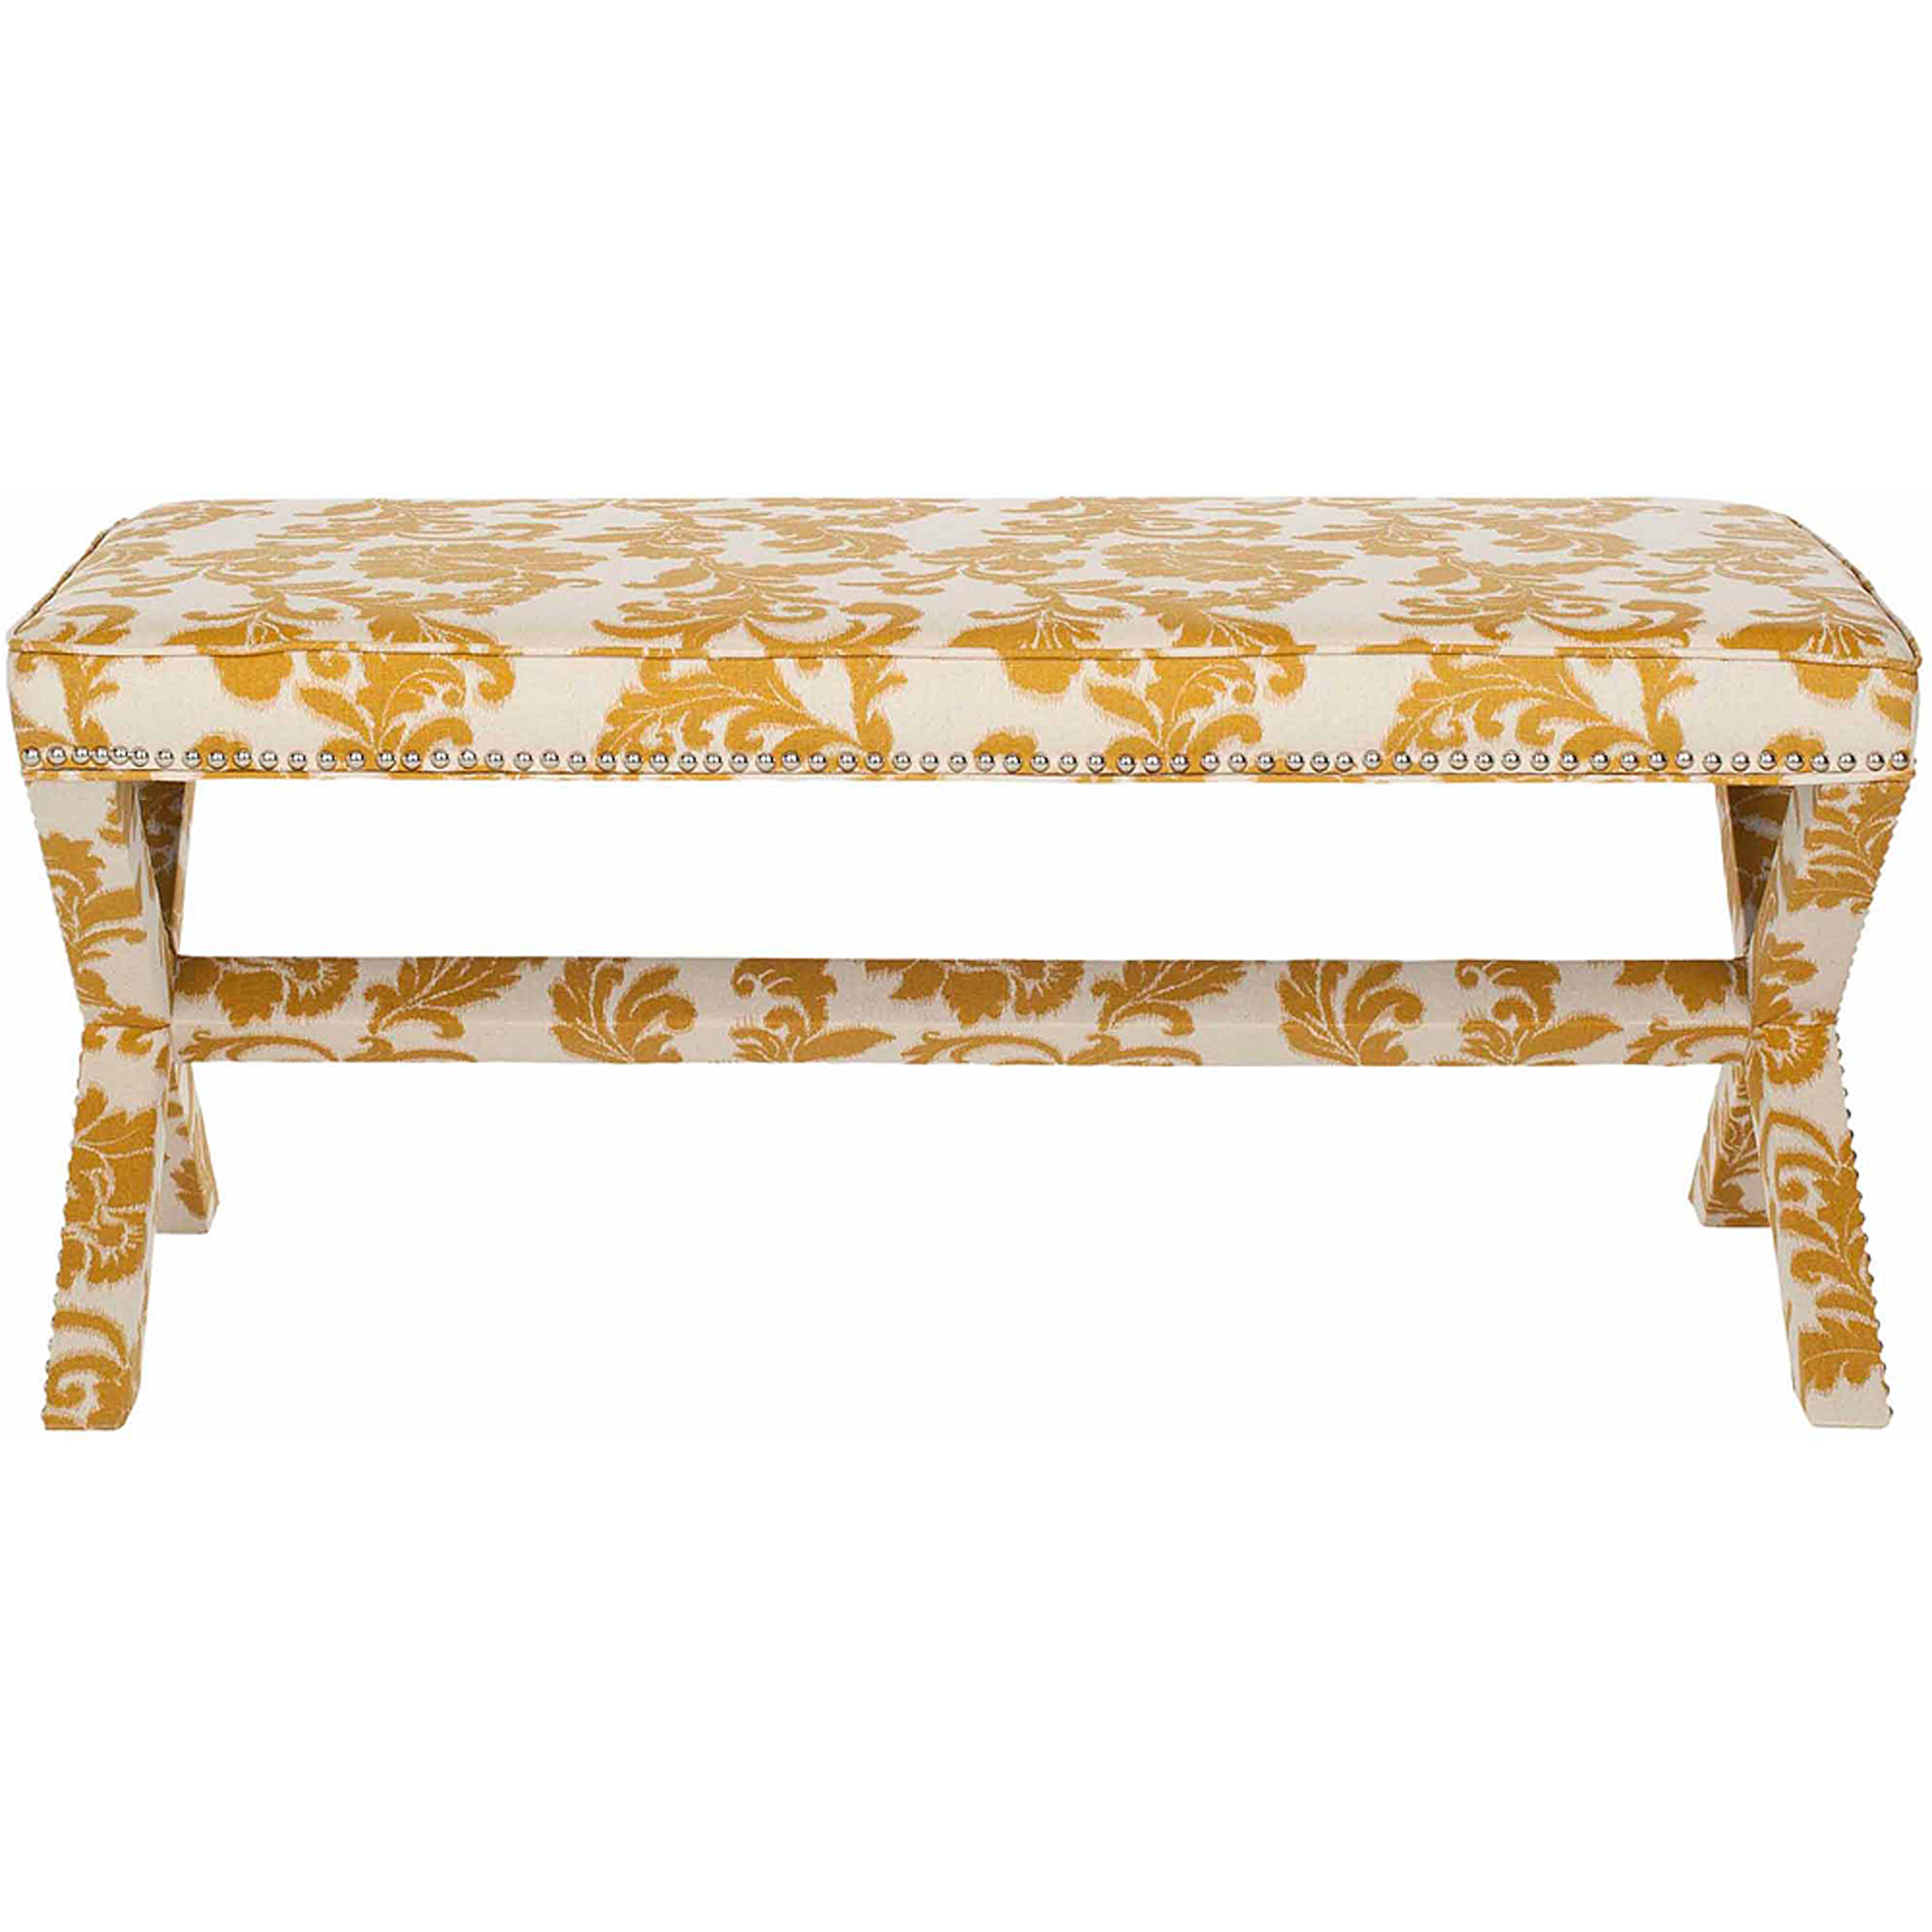 Safavieh Melanie Upholstered Extended Bench, Multiple Colors